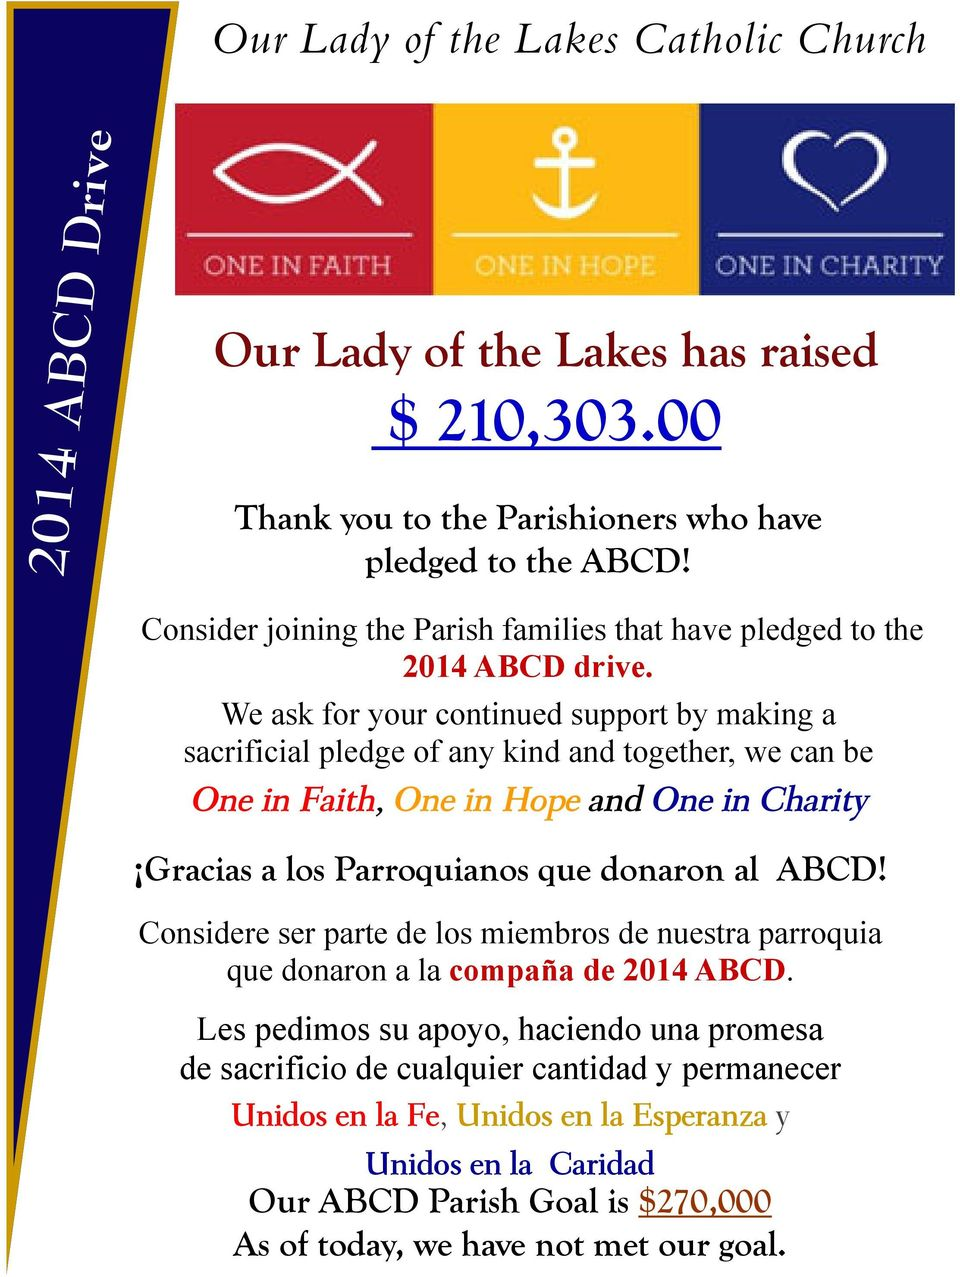 We ask for your continued support by making a sacrificial pledge of any kind and together, we can be One in Faith, One in Hope and One in Charity Gracias a los Parroquianos que donaron al